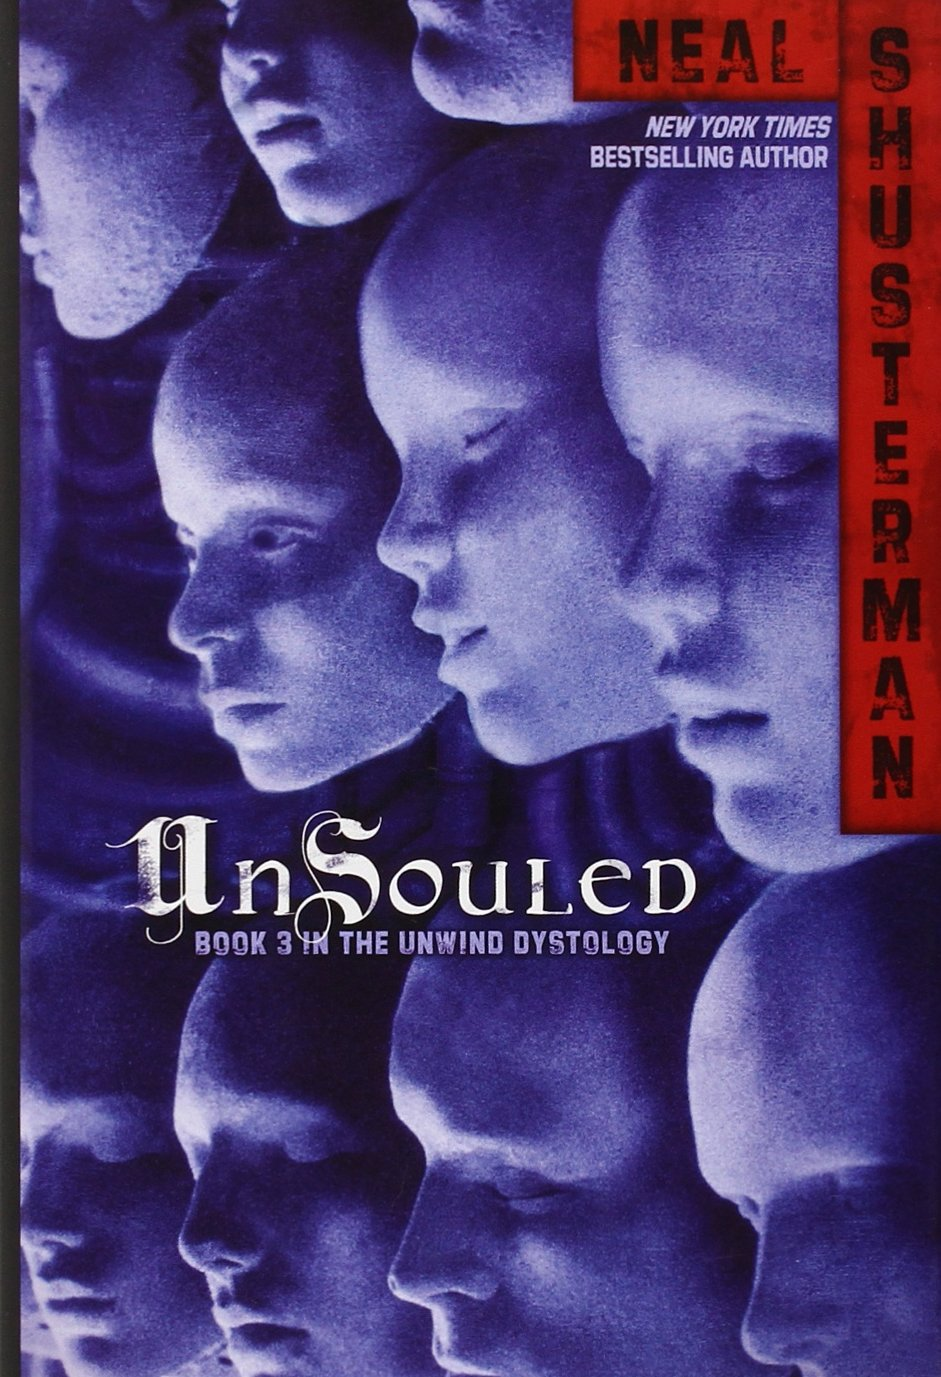 Image result for Unsouled by neal shusterman